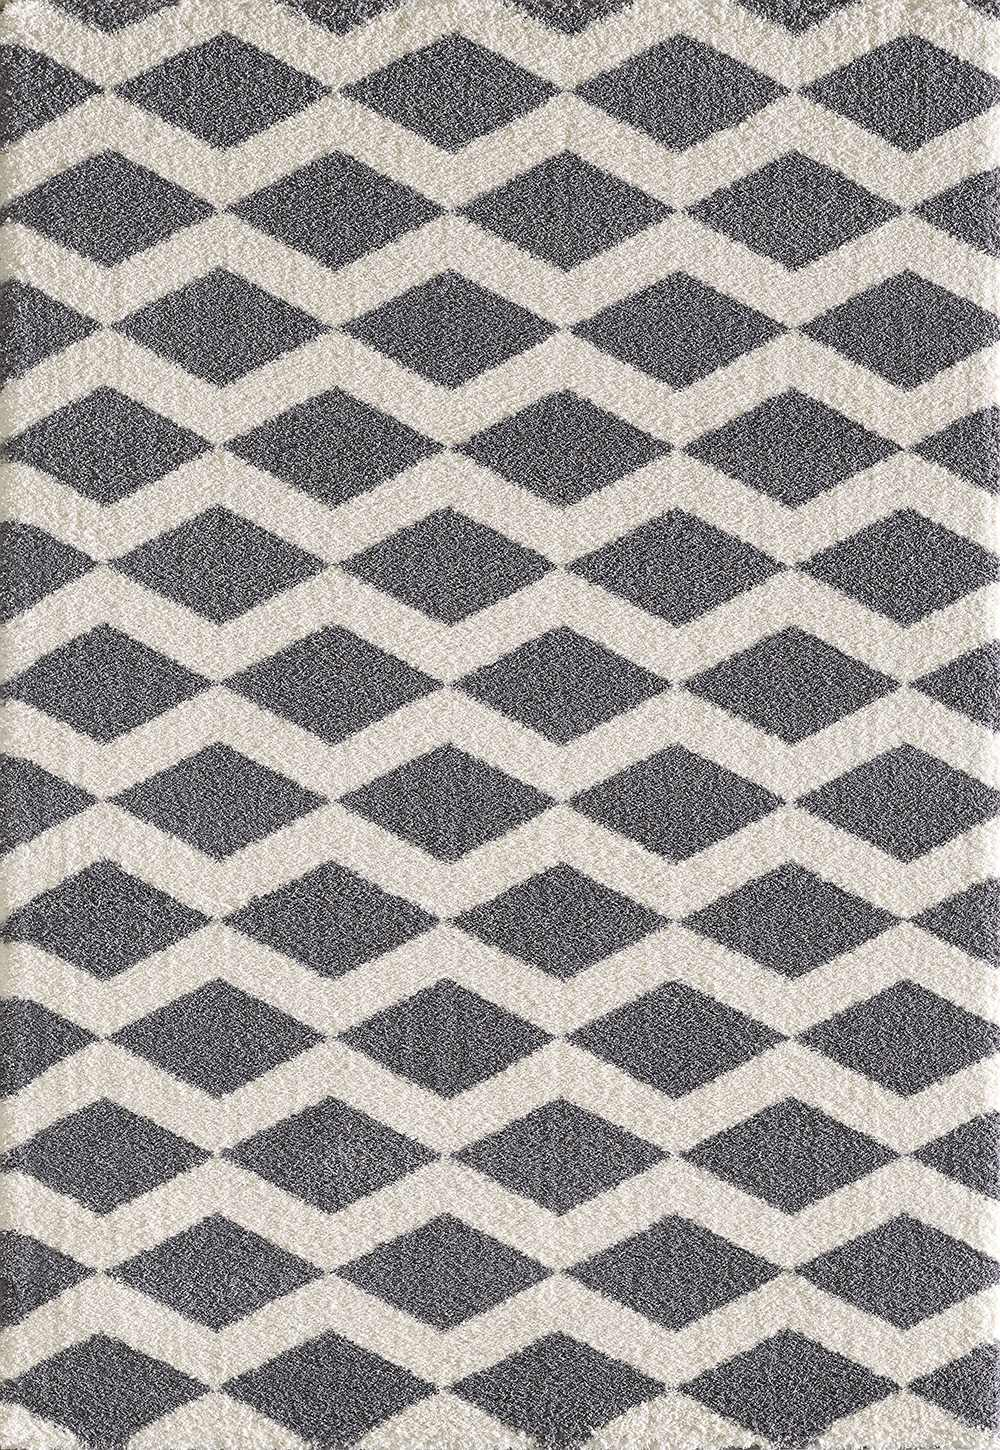 Dynamic Rugs Silky Shag Geometric Grey 5904 Area Rug